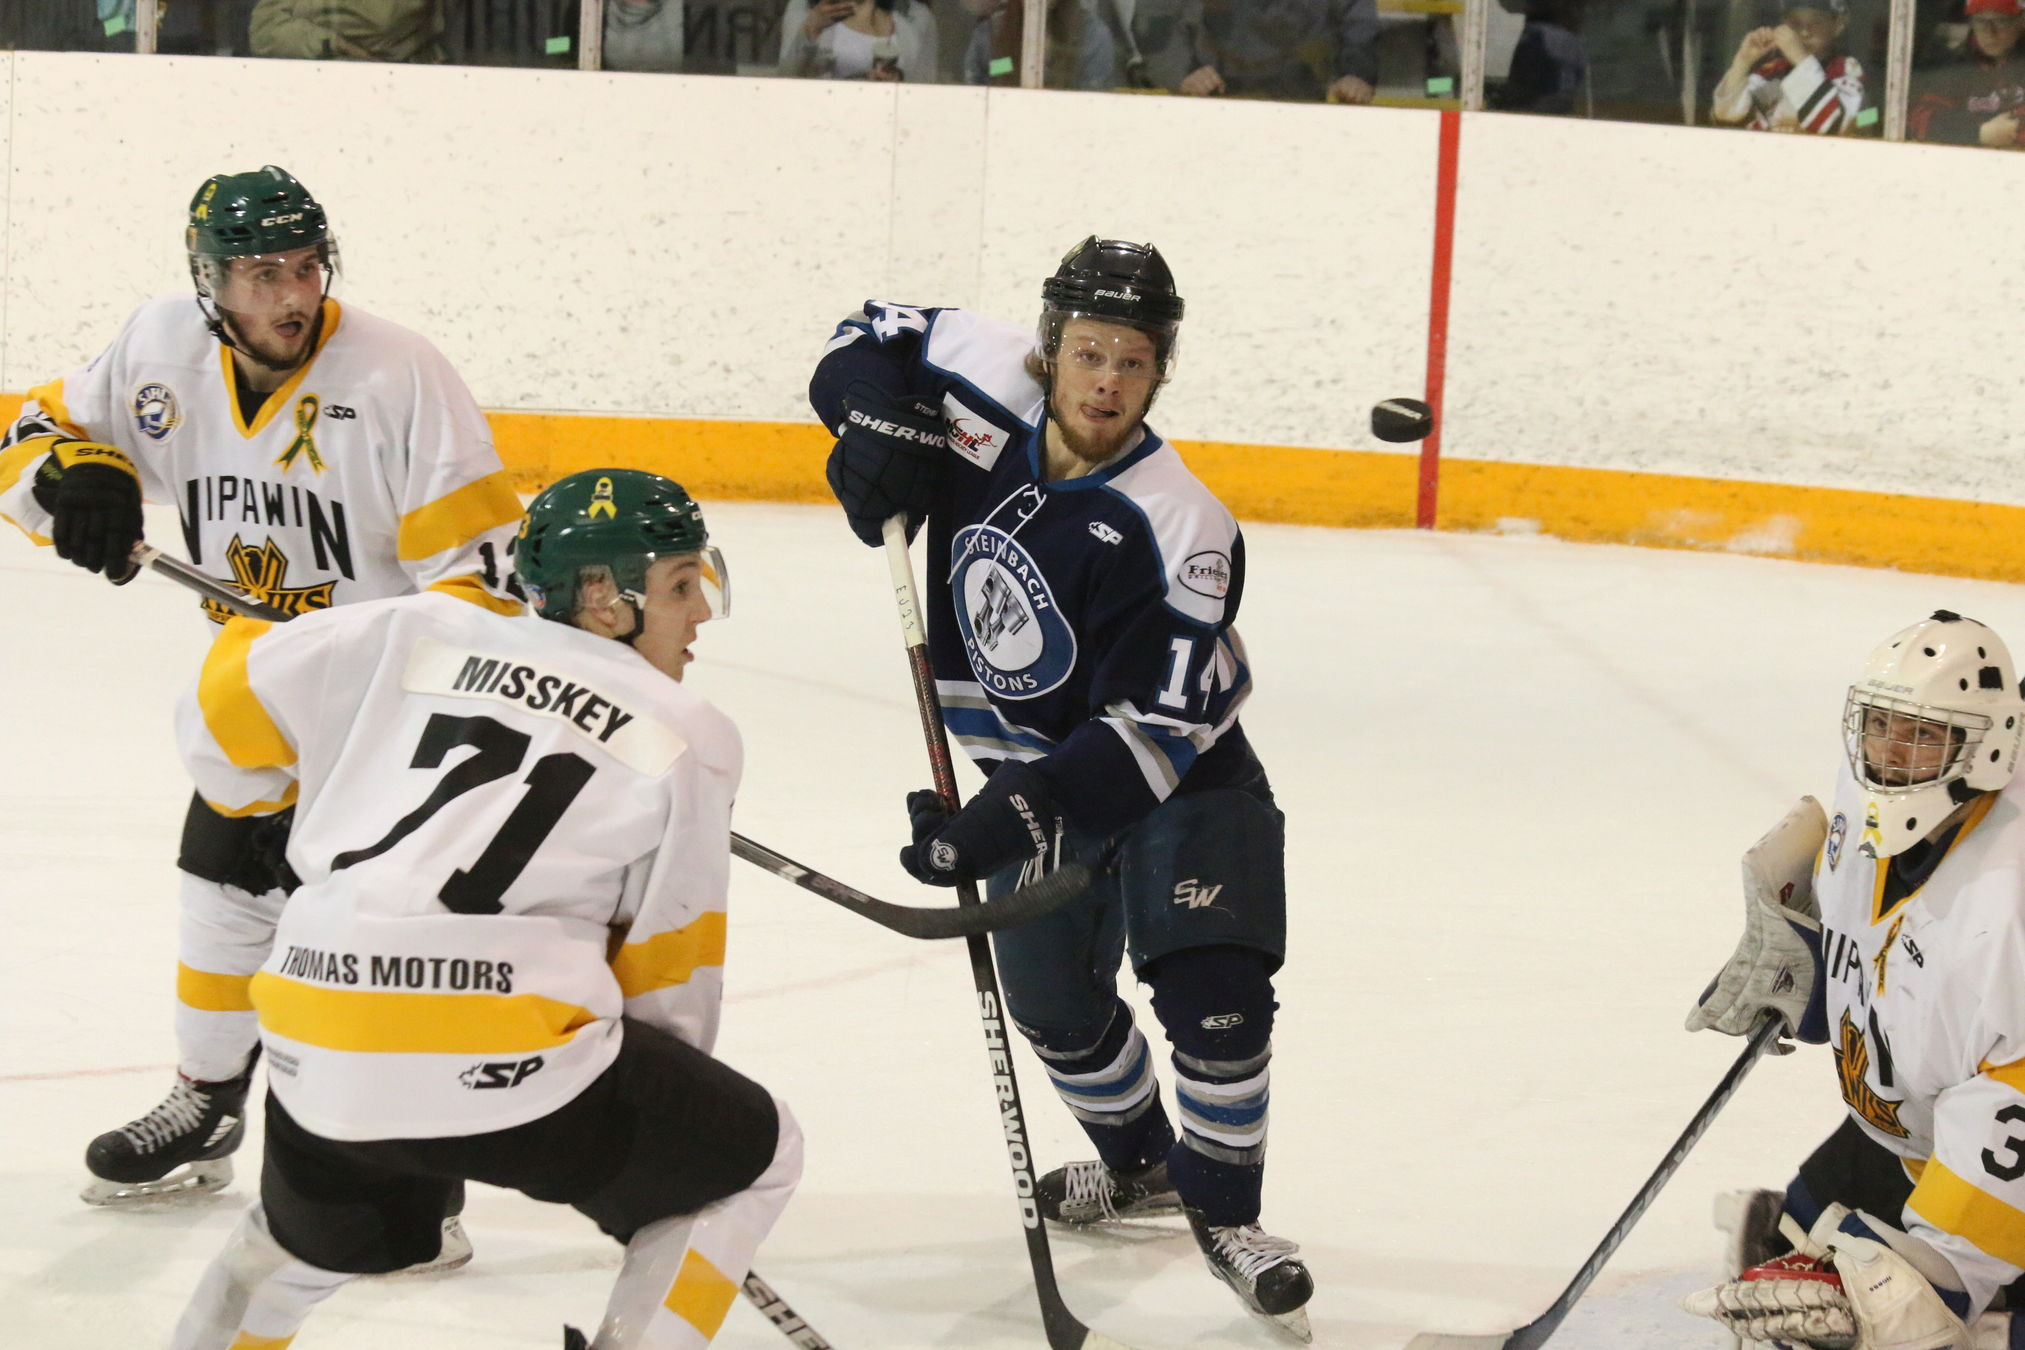 Pistons' forward Jack Johnson keeps an eye on an airborne puck in front of goaltender Declan Hobbs Tuesday night in Nipawin as the Steinbach Pistons crushed the hometown Hawks 6-2 to take a 2-1 ANAVET Cup series lead.